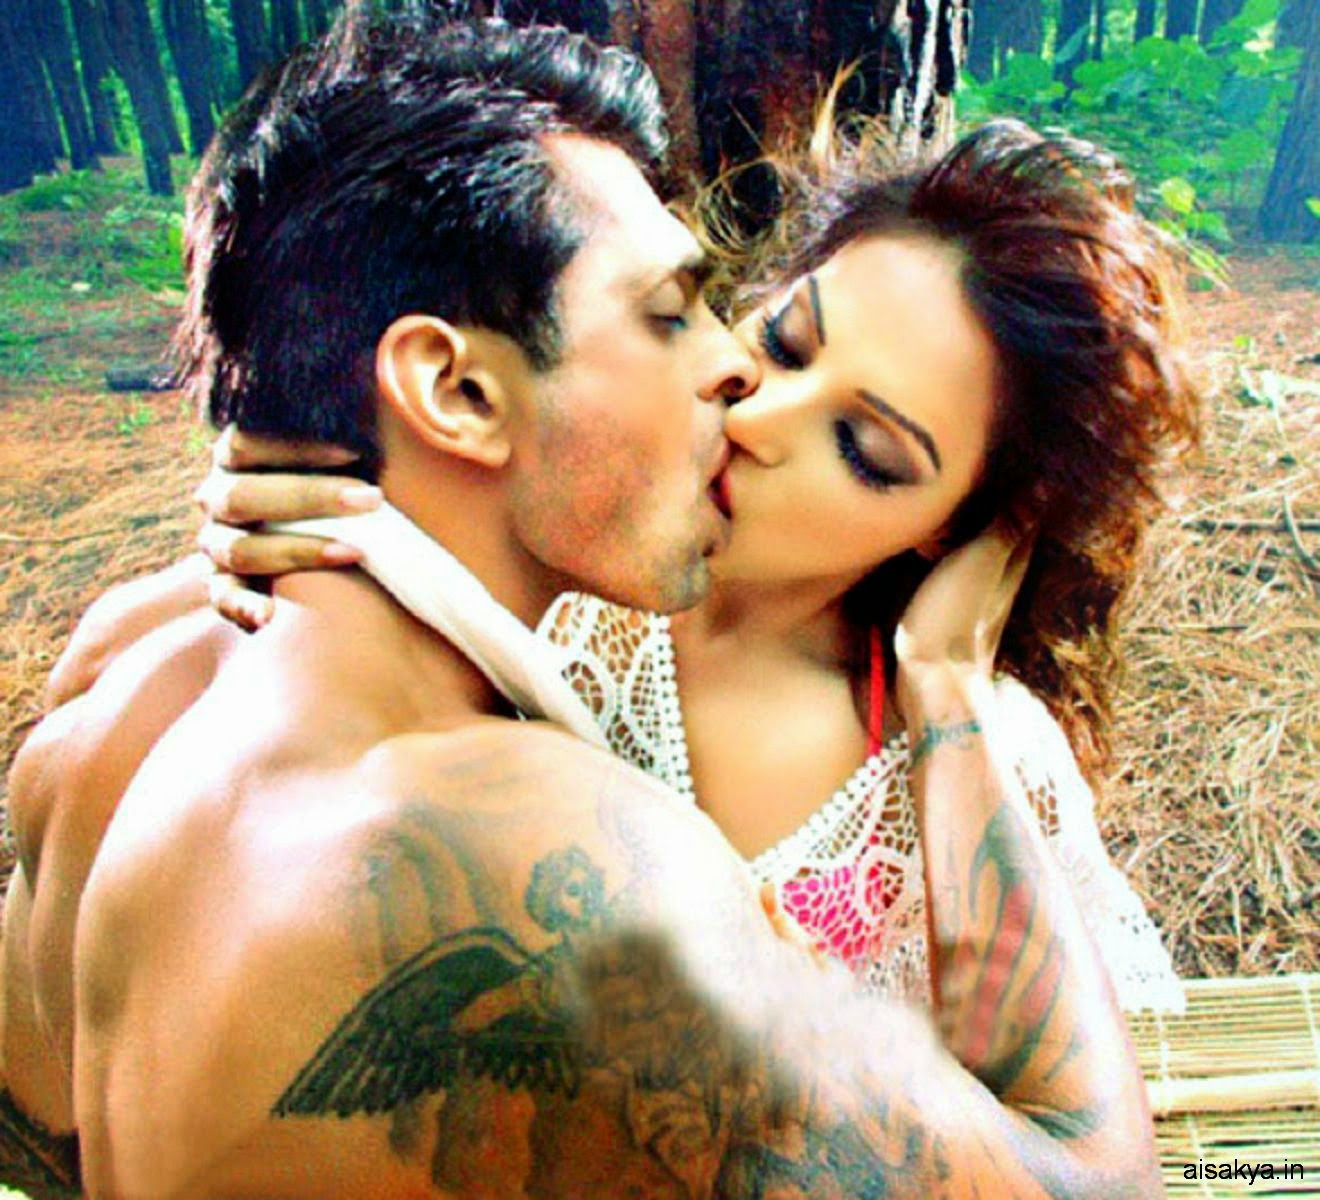 bipasha basu wild, alone katra song lip lock kiss scene with karan